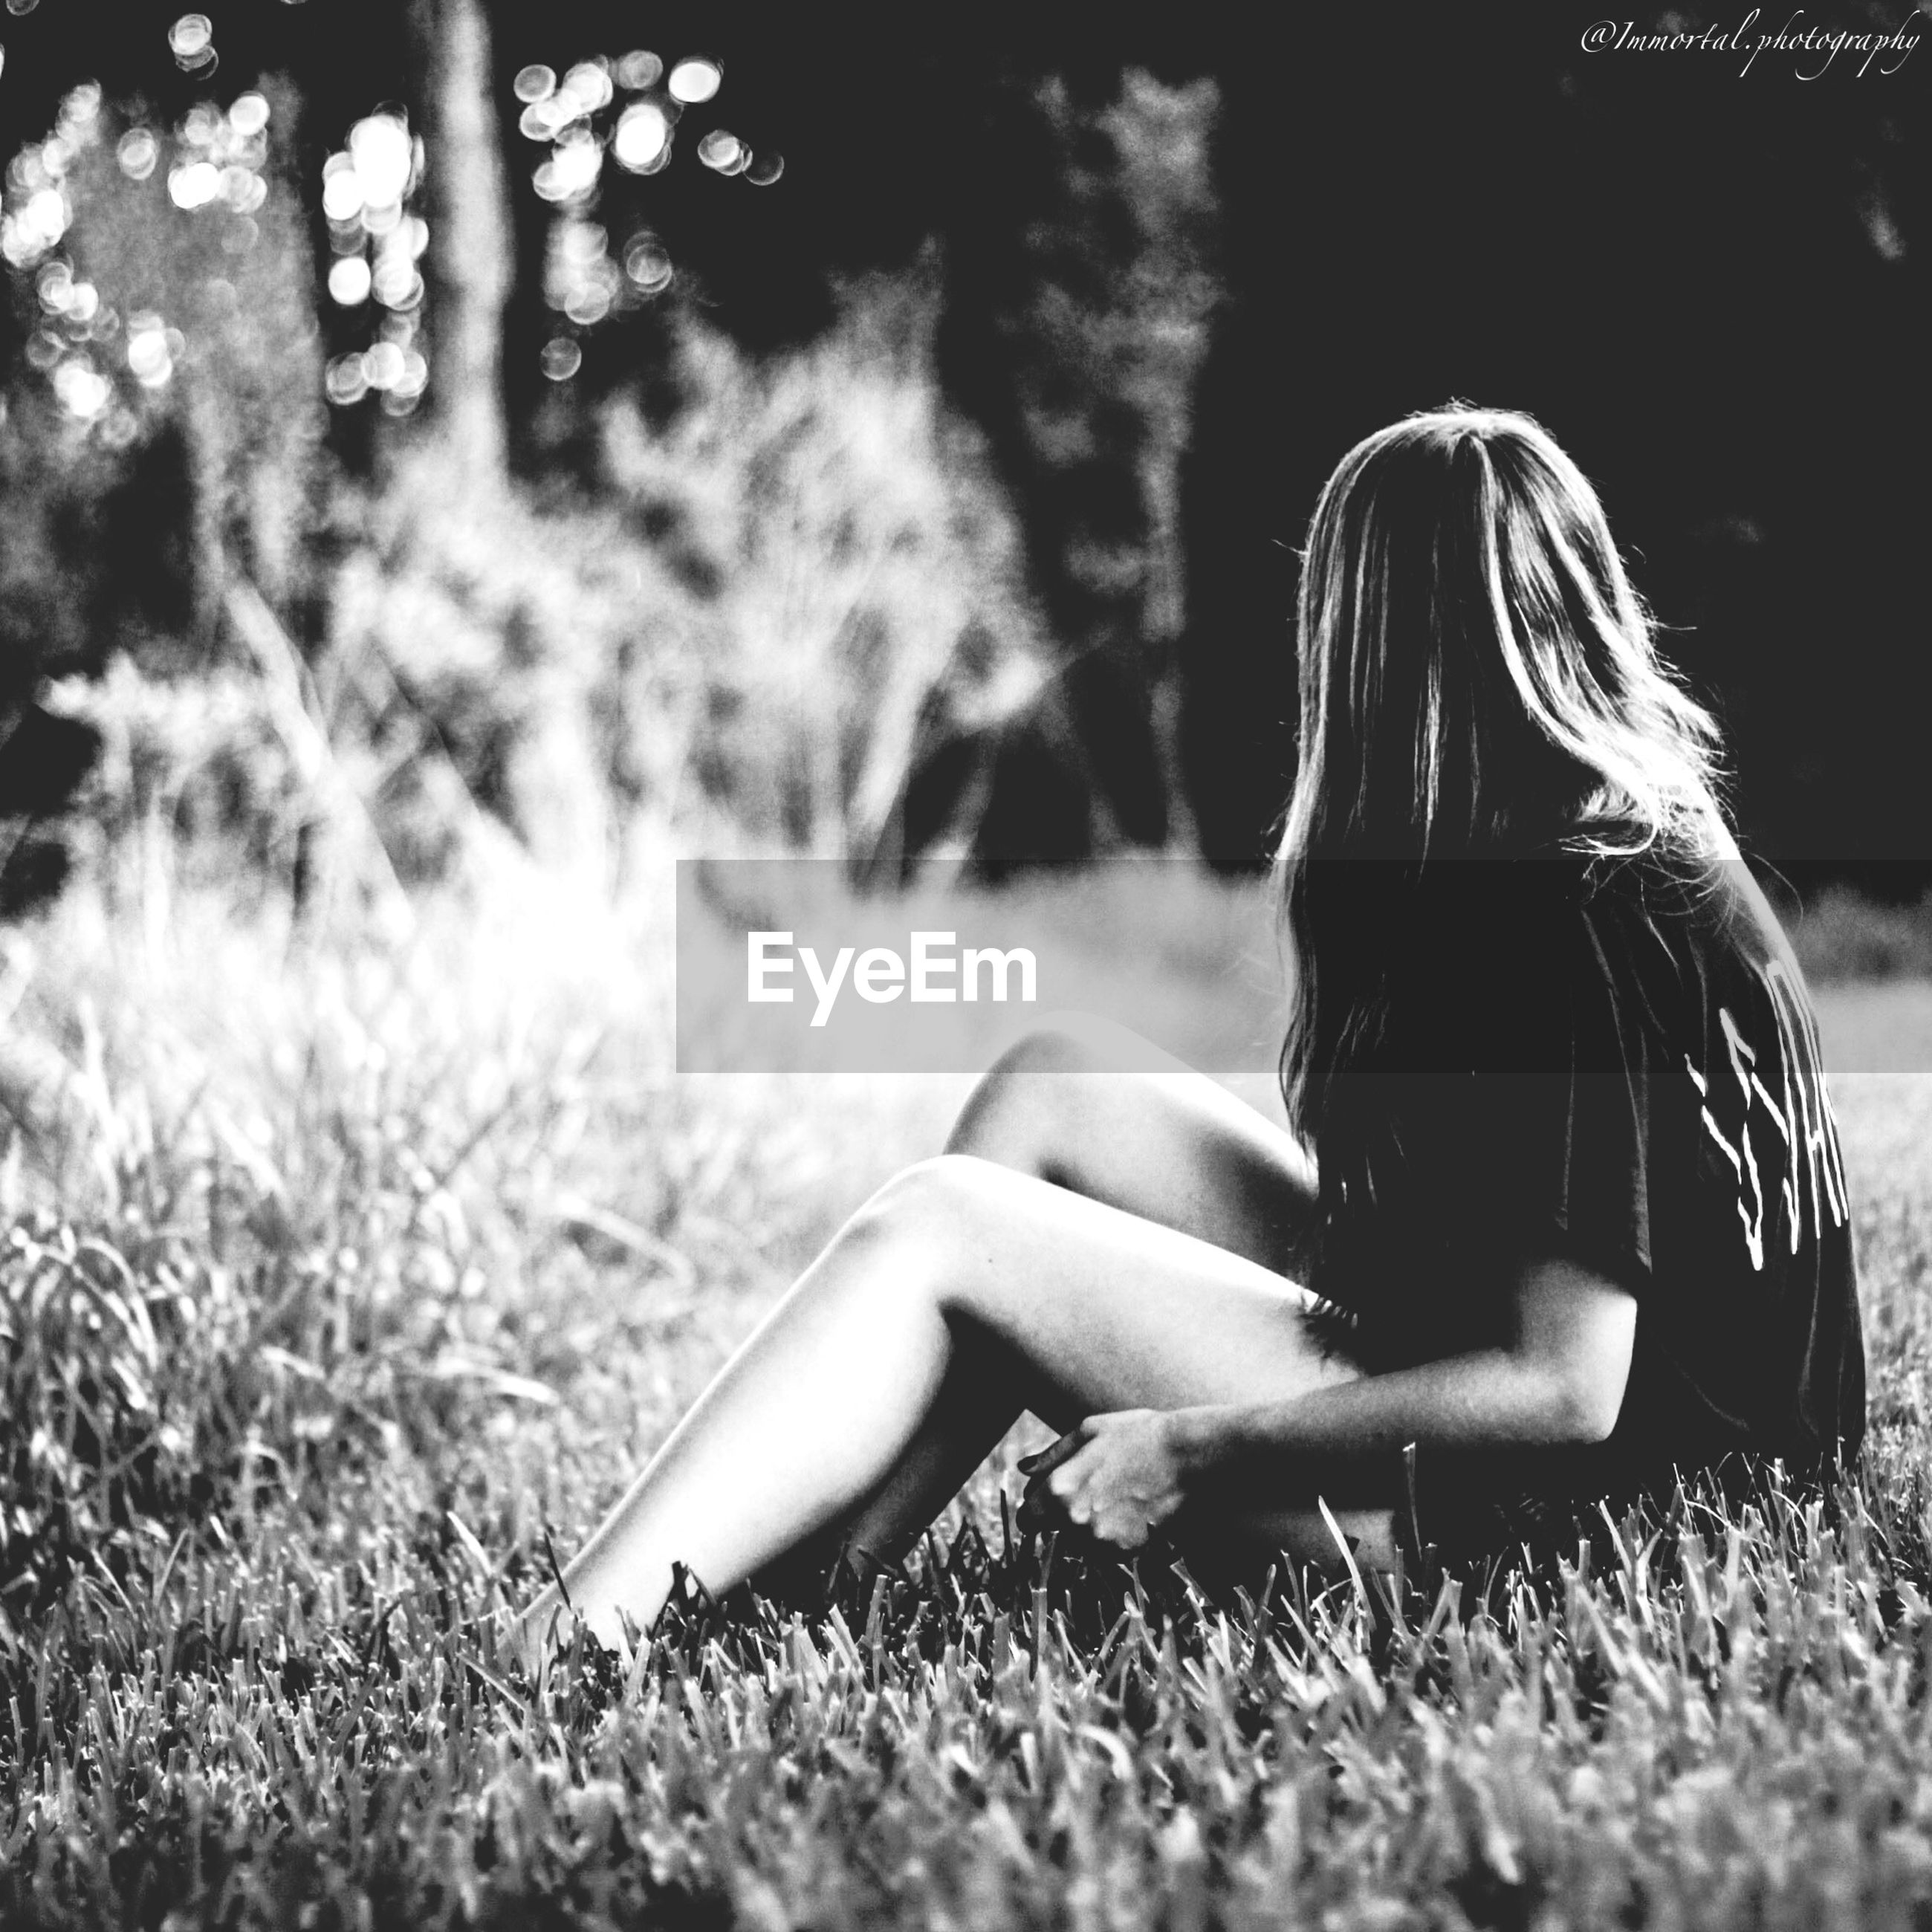 grass, field, lifestyles, grassy, leisure activity, relaxation, young women, sitting, person, young adult, lying down, long hair, casual clothing, park - man made space, nature, side view, sunlight